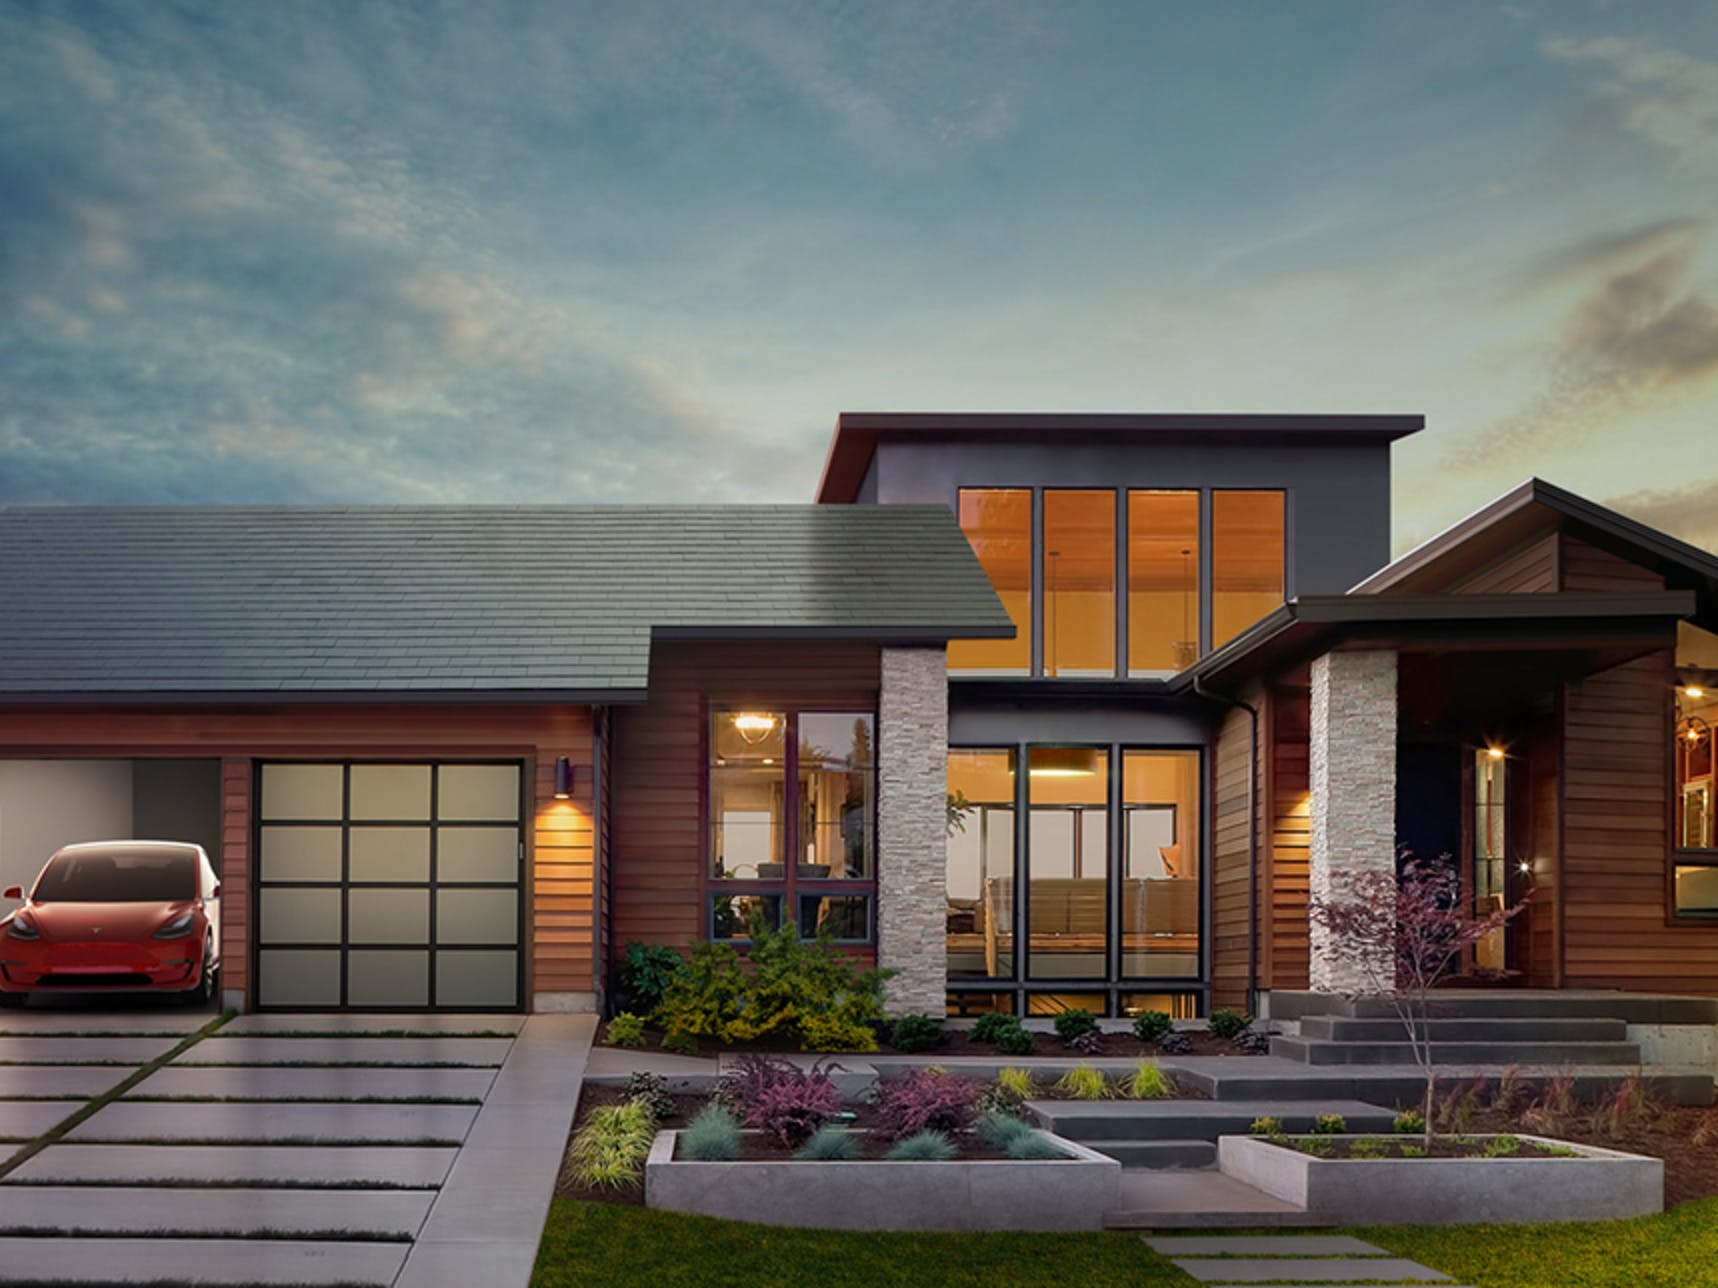 Tesla Solar Roof Order >> Tesla Solar Roof 8 Things You Don T Realize Until You Own One Inverse